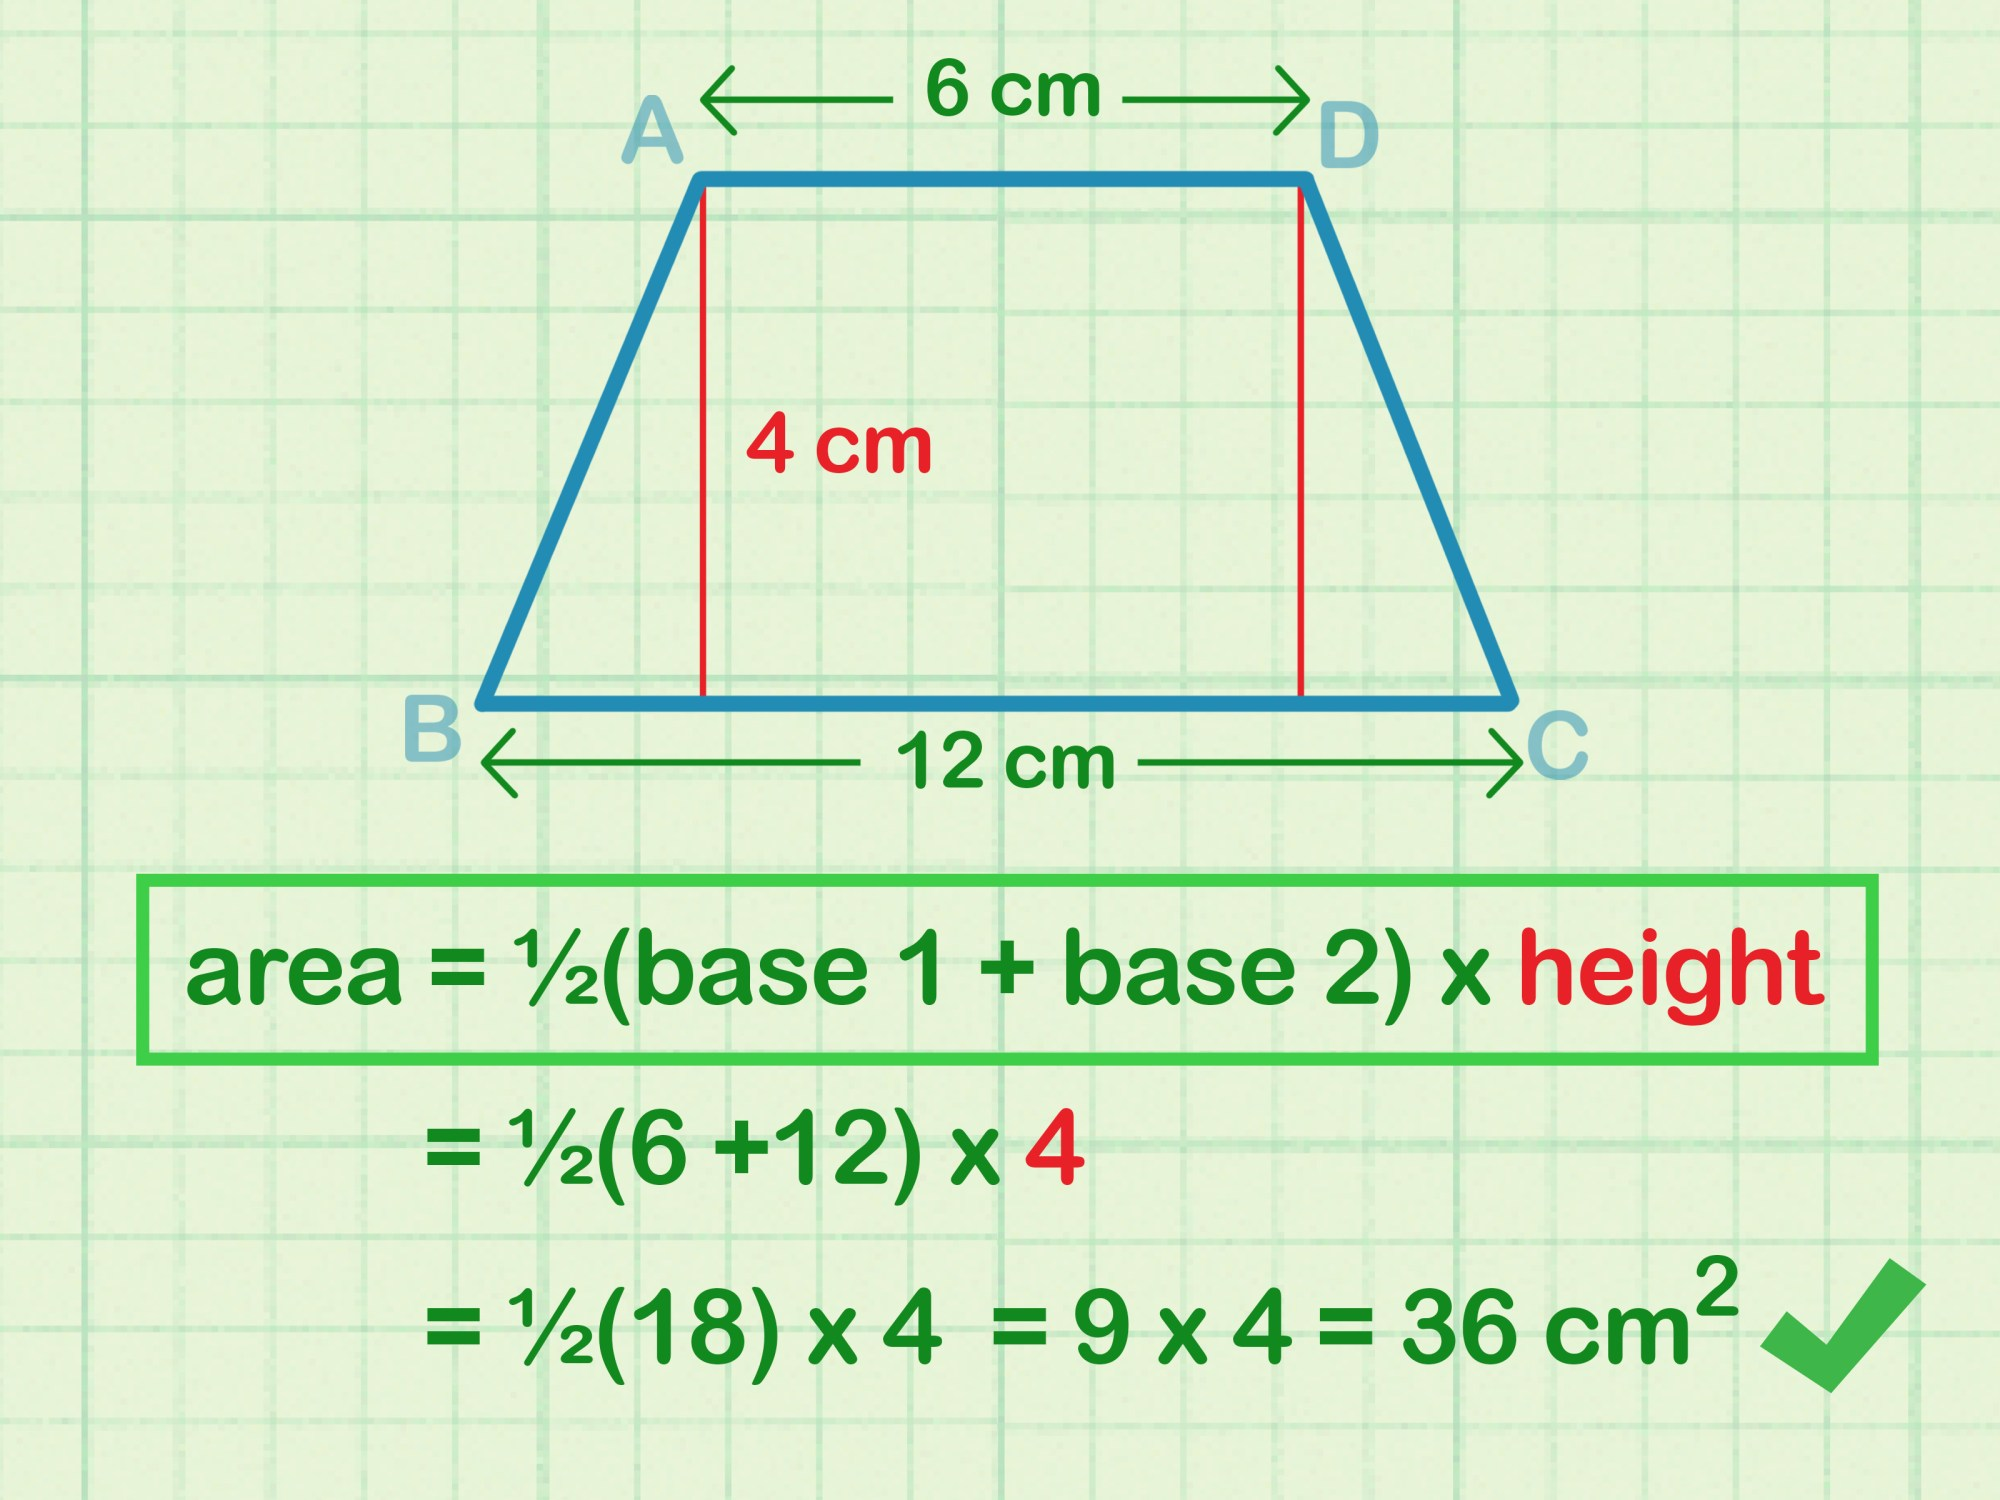 hight resolution of How to Calculate the Area of a Trapezoid: 8 Steps (with Pictures)